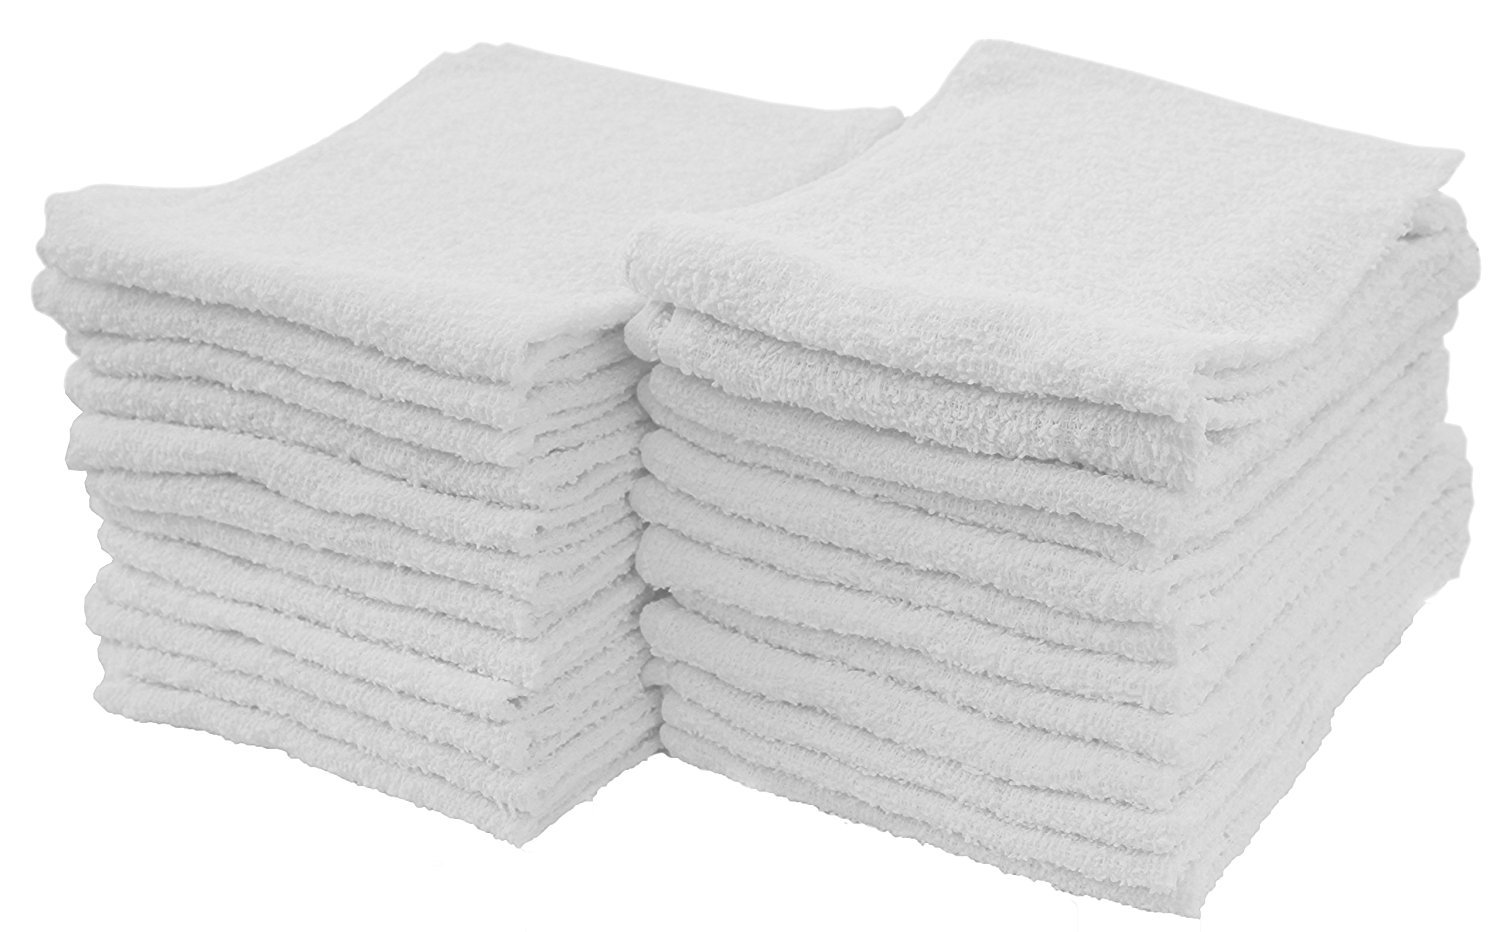 S & T 593901 White 14 x 17 Cotton Terry Cleaning Towels, 24 Pack